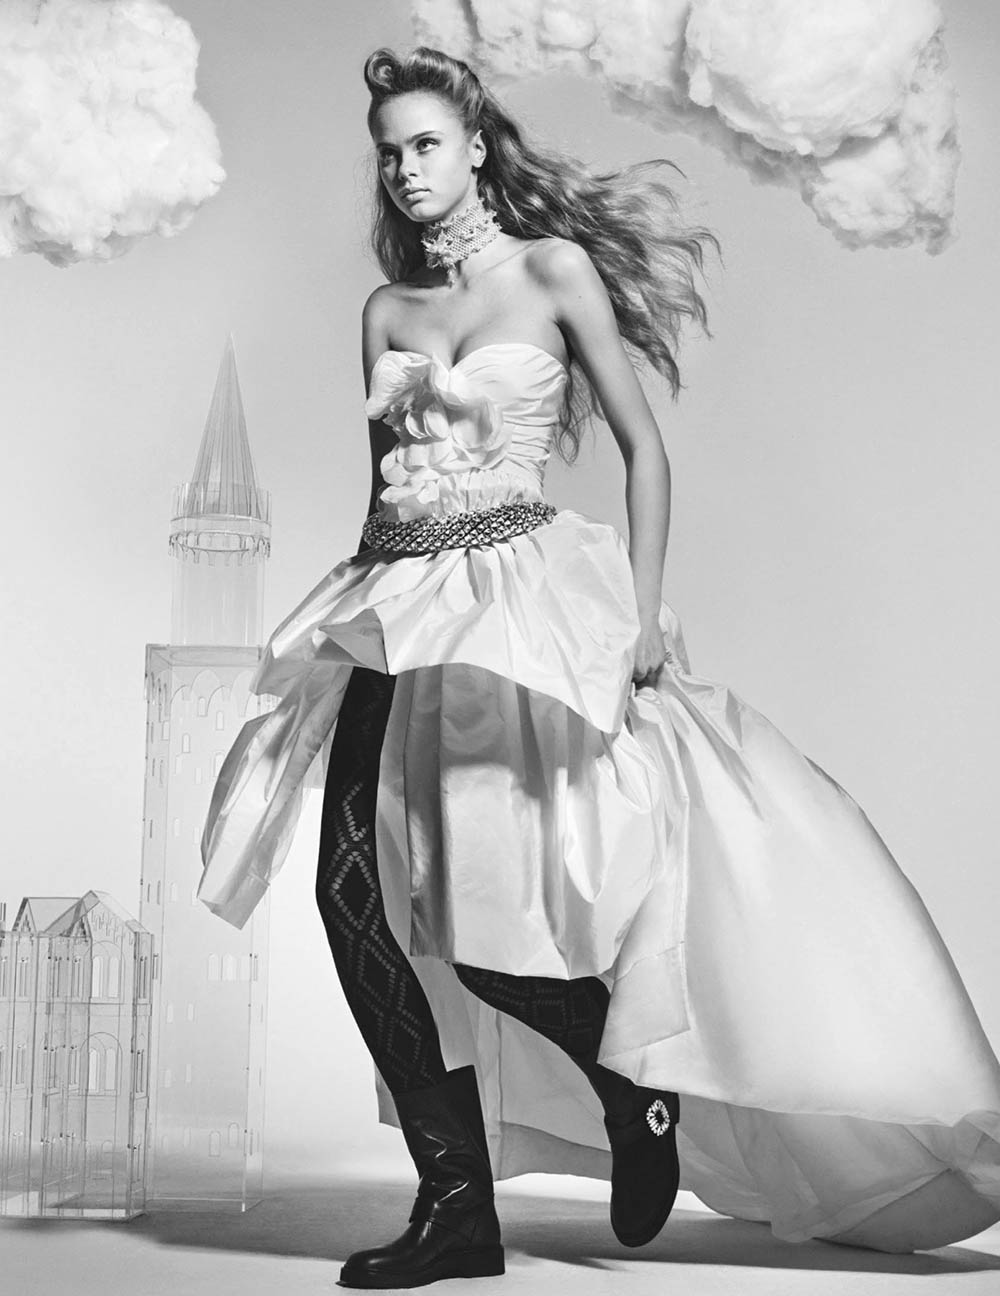 ''Castle On A Cloud'' by Craig McDean for British Vogue March 2020